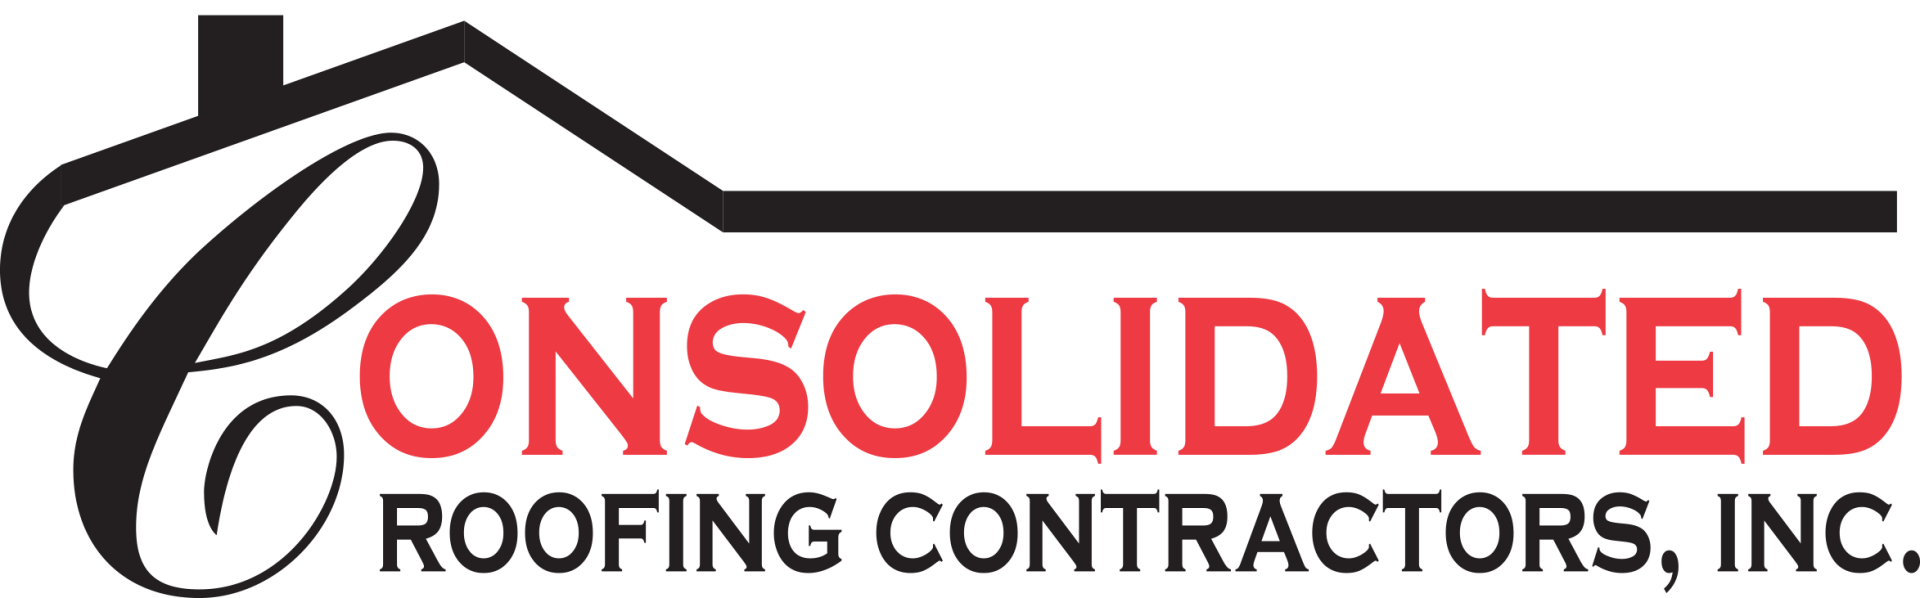 Consolidated Roofing Contractors Inc Roof Repair